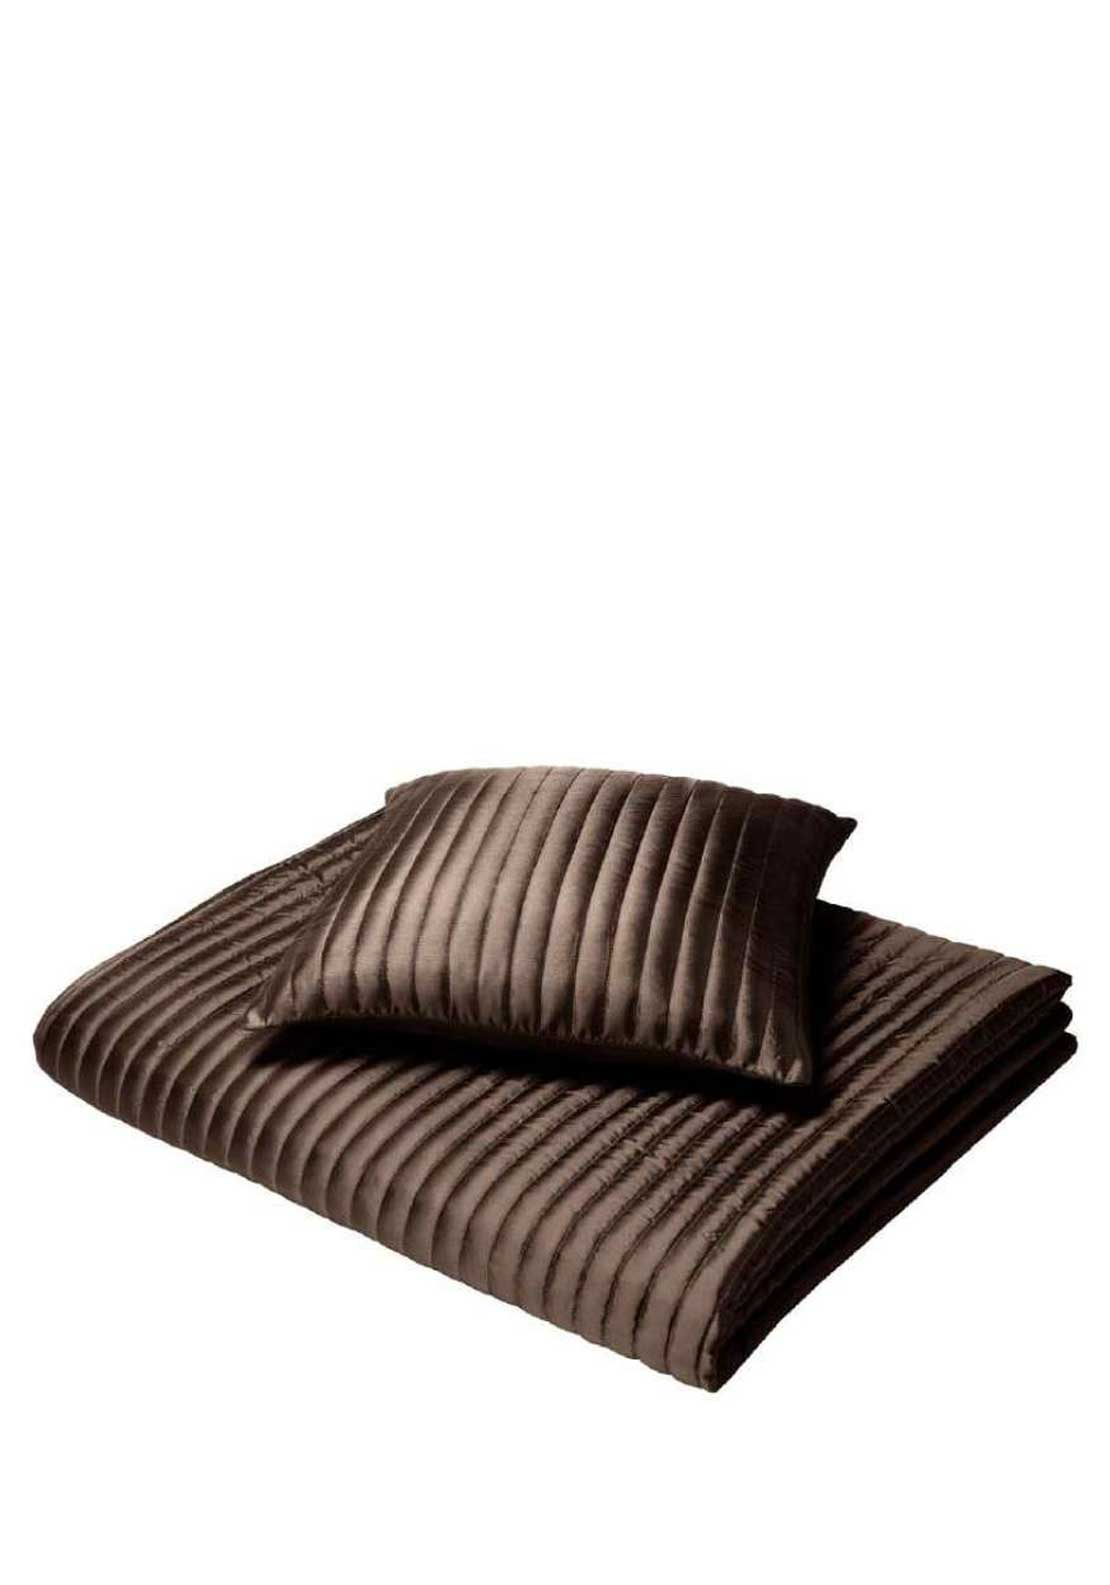 Catherine Lansfield Home Taffeta Cushion Cover, Chocolate